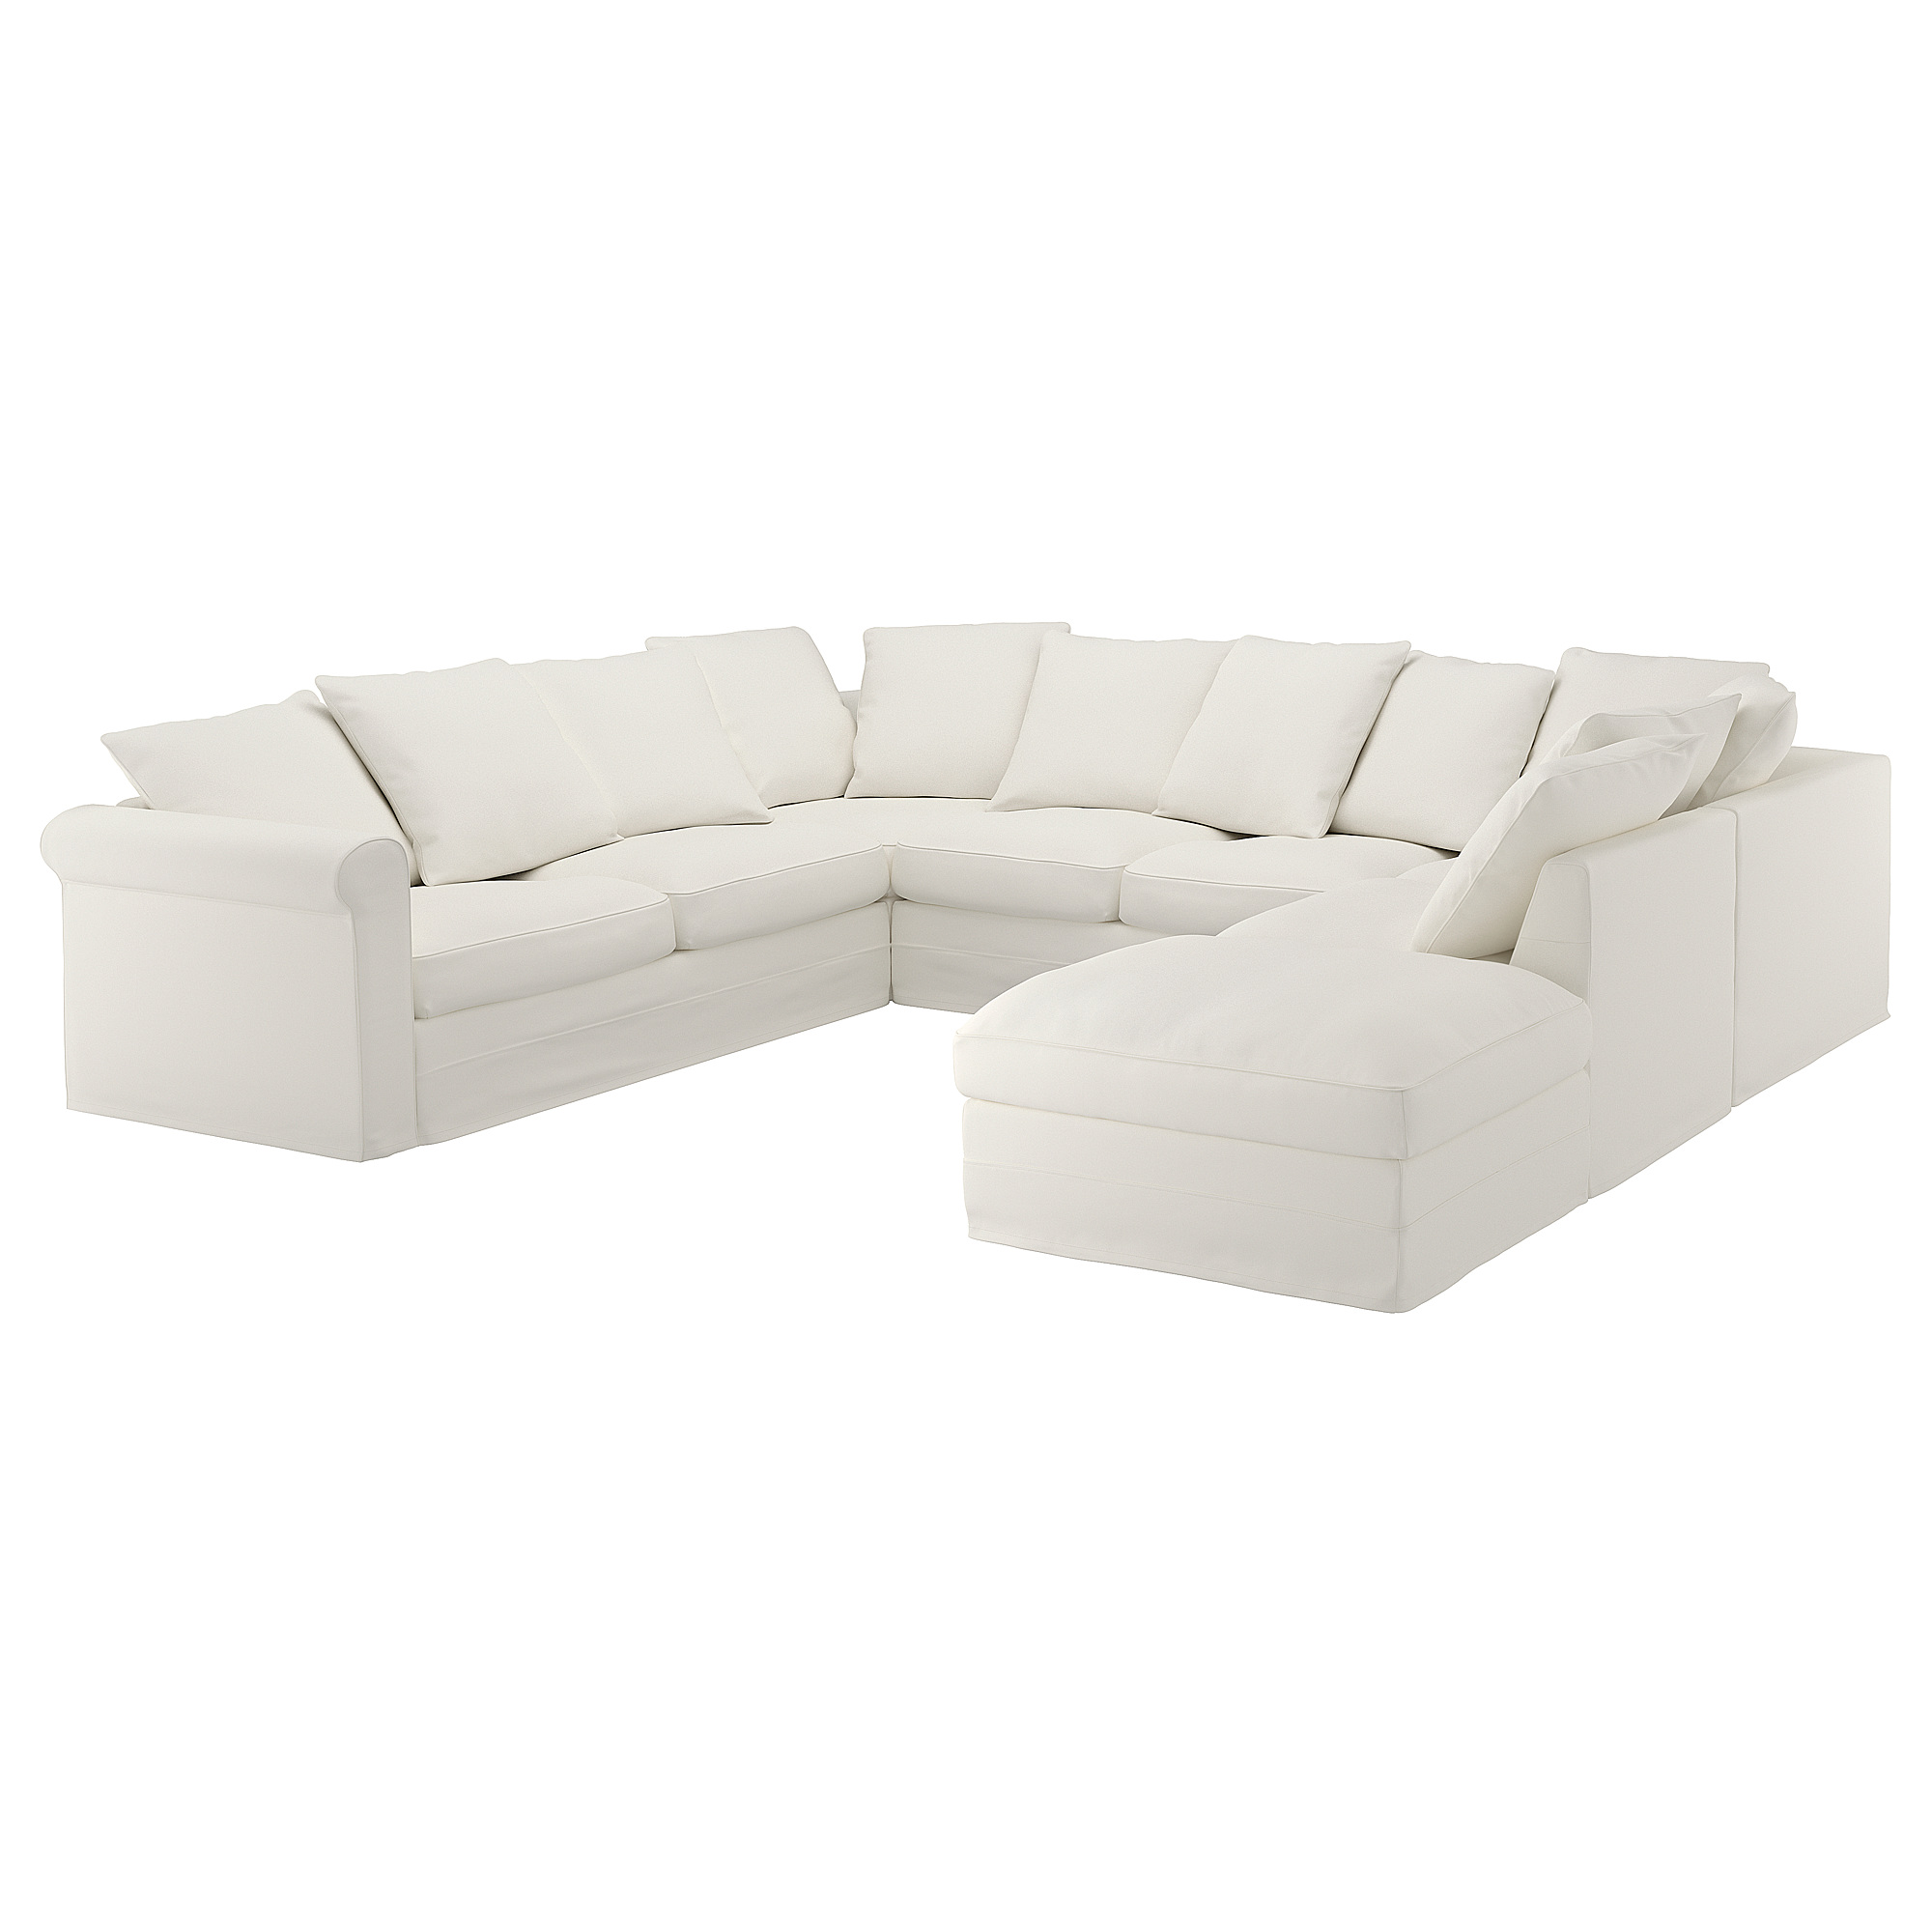 Ikea Gronlid Sectional 6 Seat With Open End Inseros White U